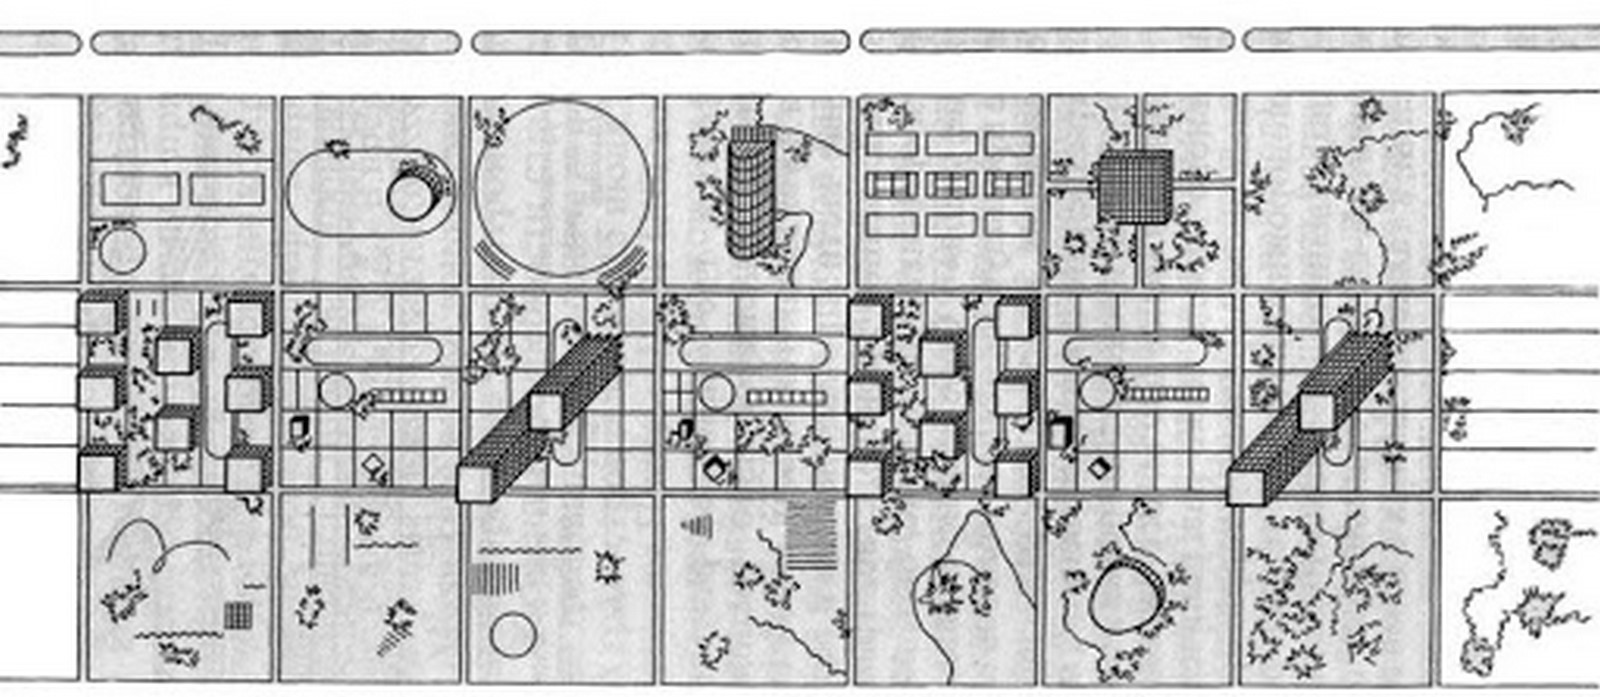 Movie for Architects: An architectural scrim to Sotsgorod: Cities of Utopia, 1995 - Sheet5